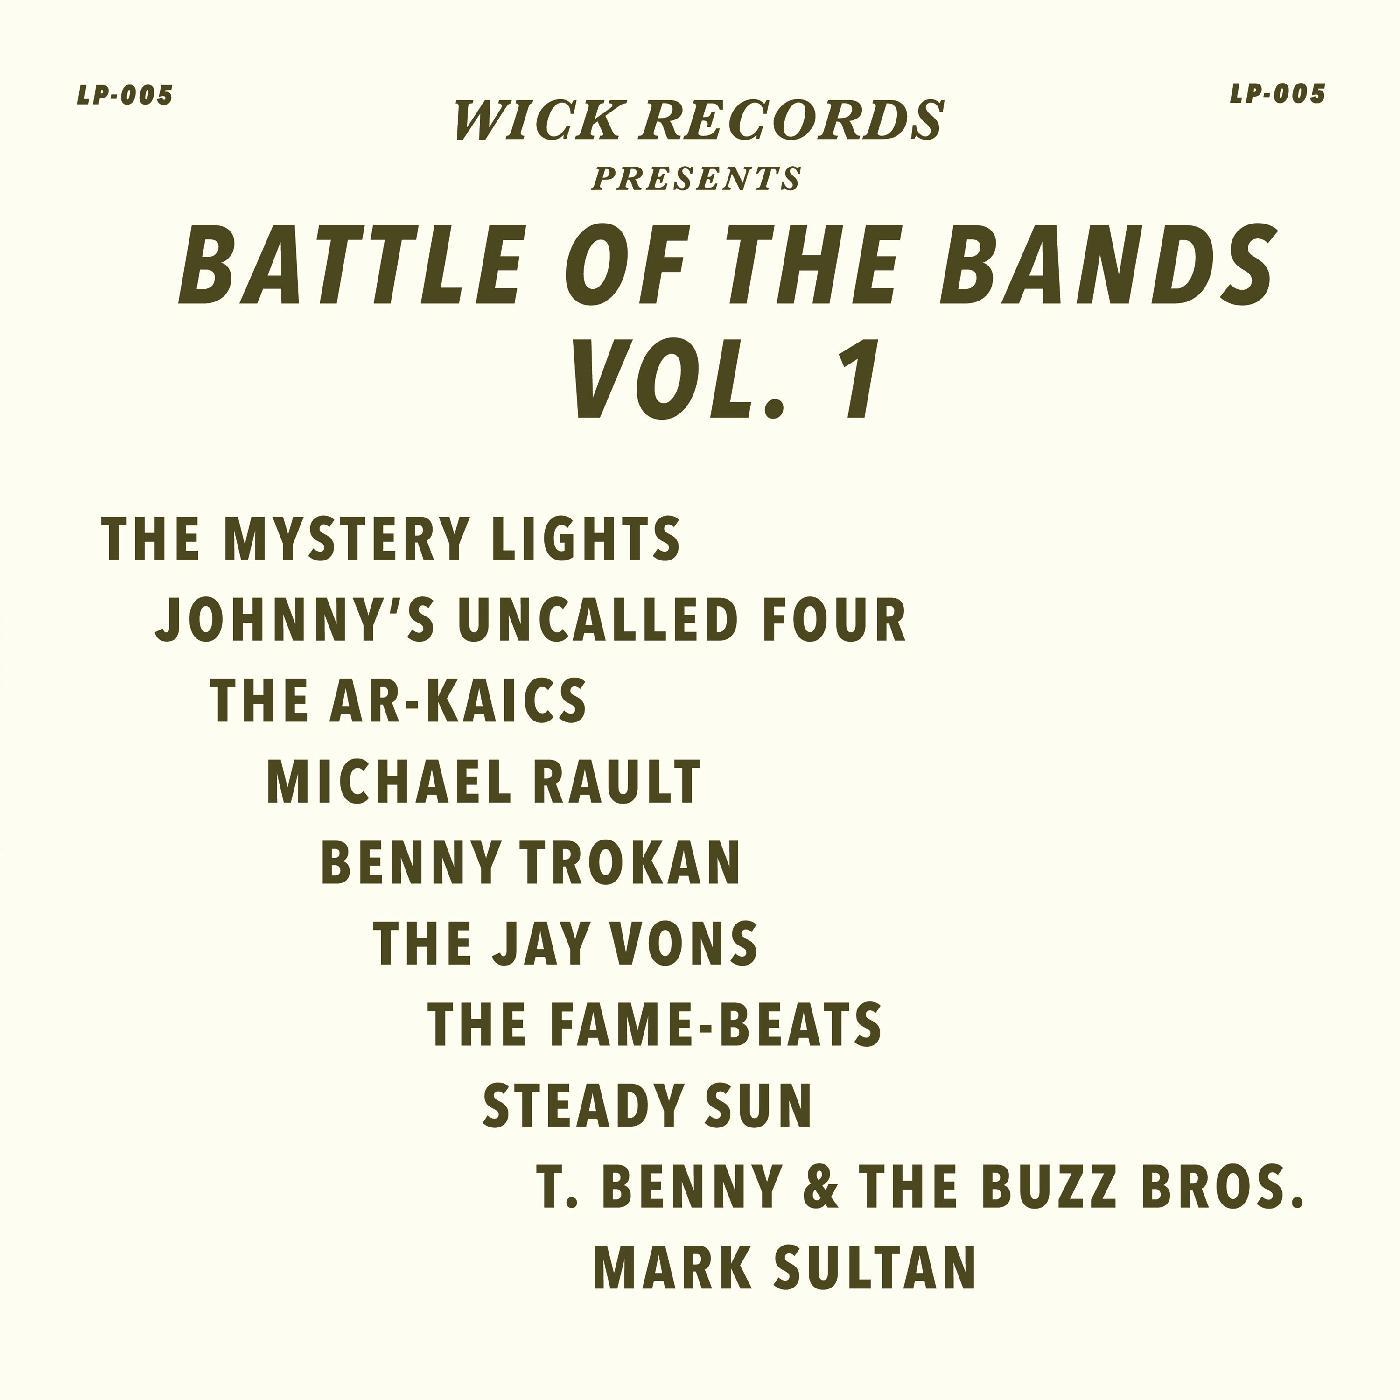 Various Artists - Wick Records Presents Battle of the Bands Vol. 1 [LP]